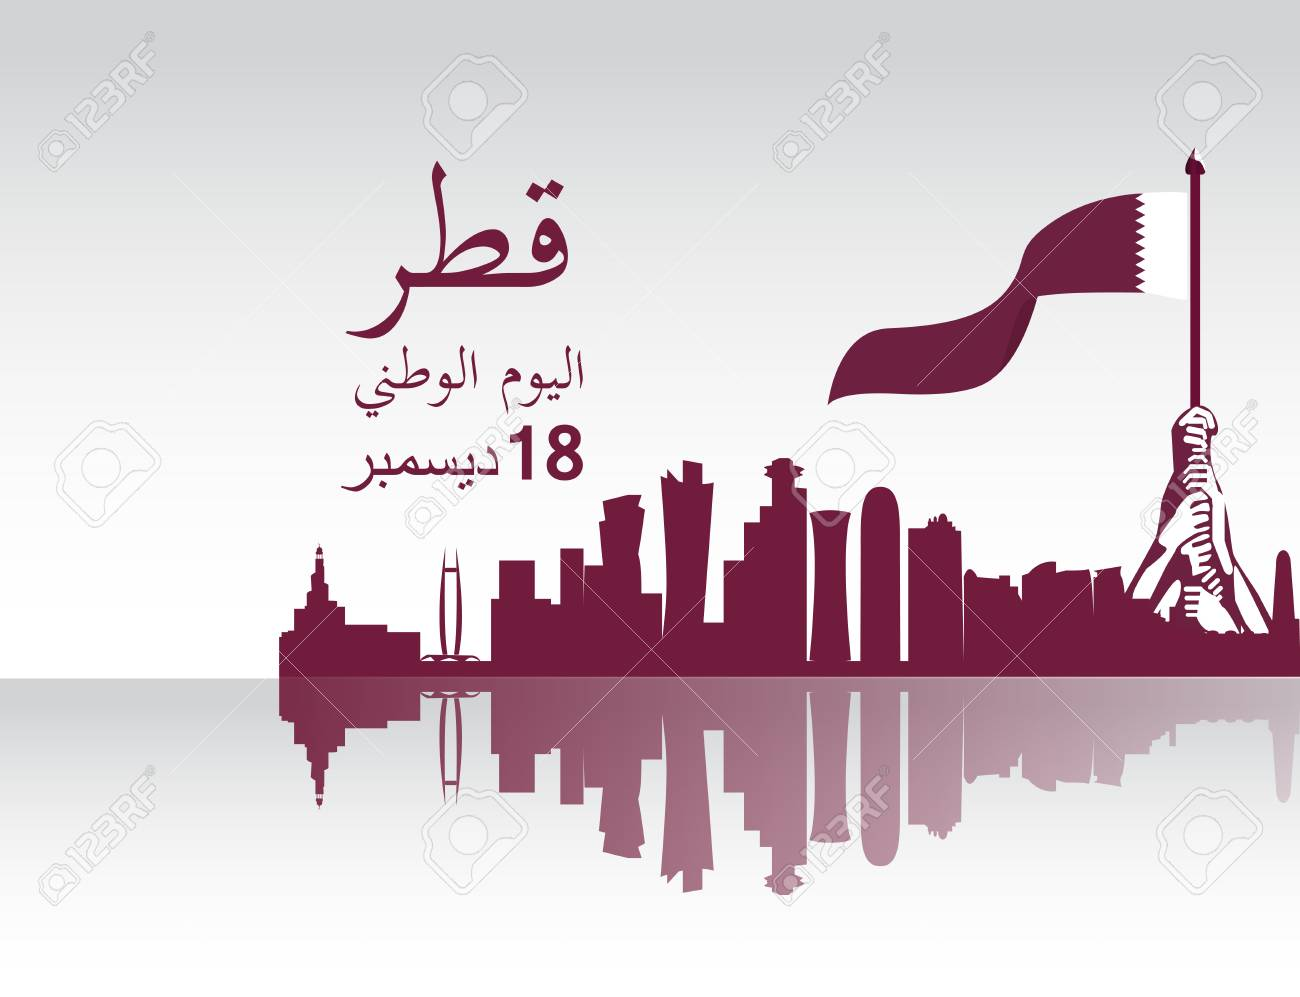 background on the occasion Qatar national day celebration, contain